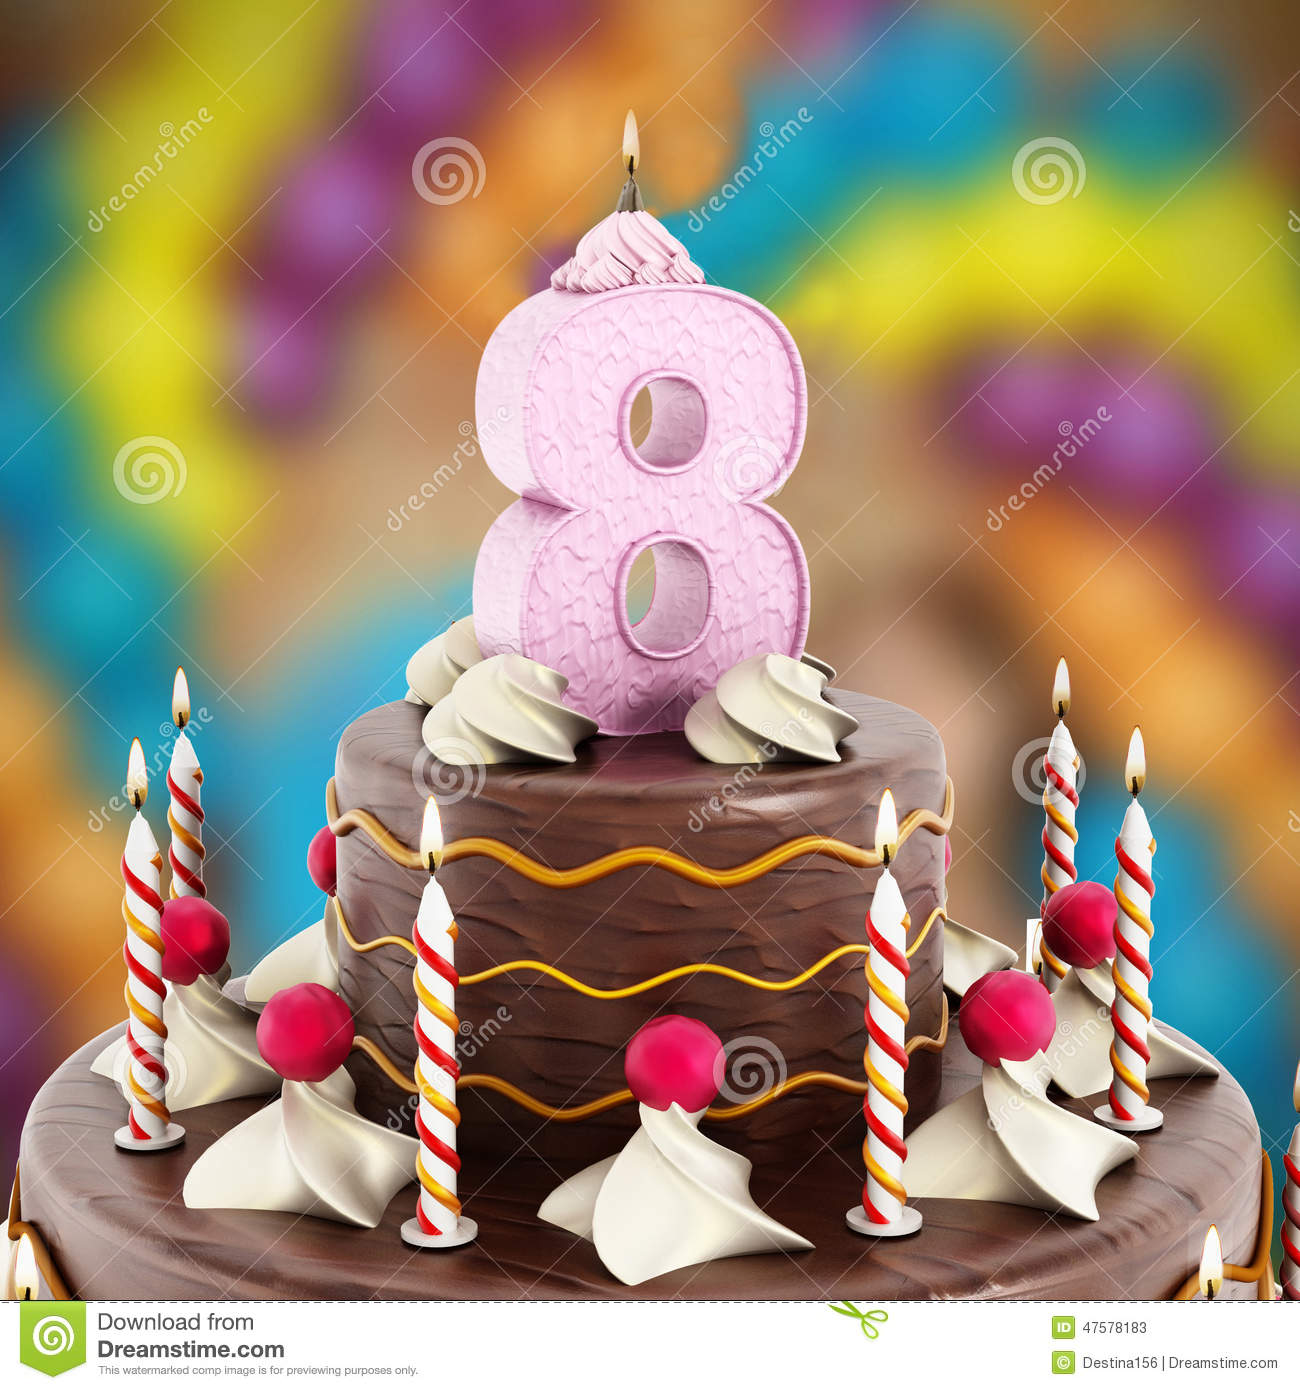 Birthday Cake With Number 8 Lit Candle Stock Image Image Of Family